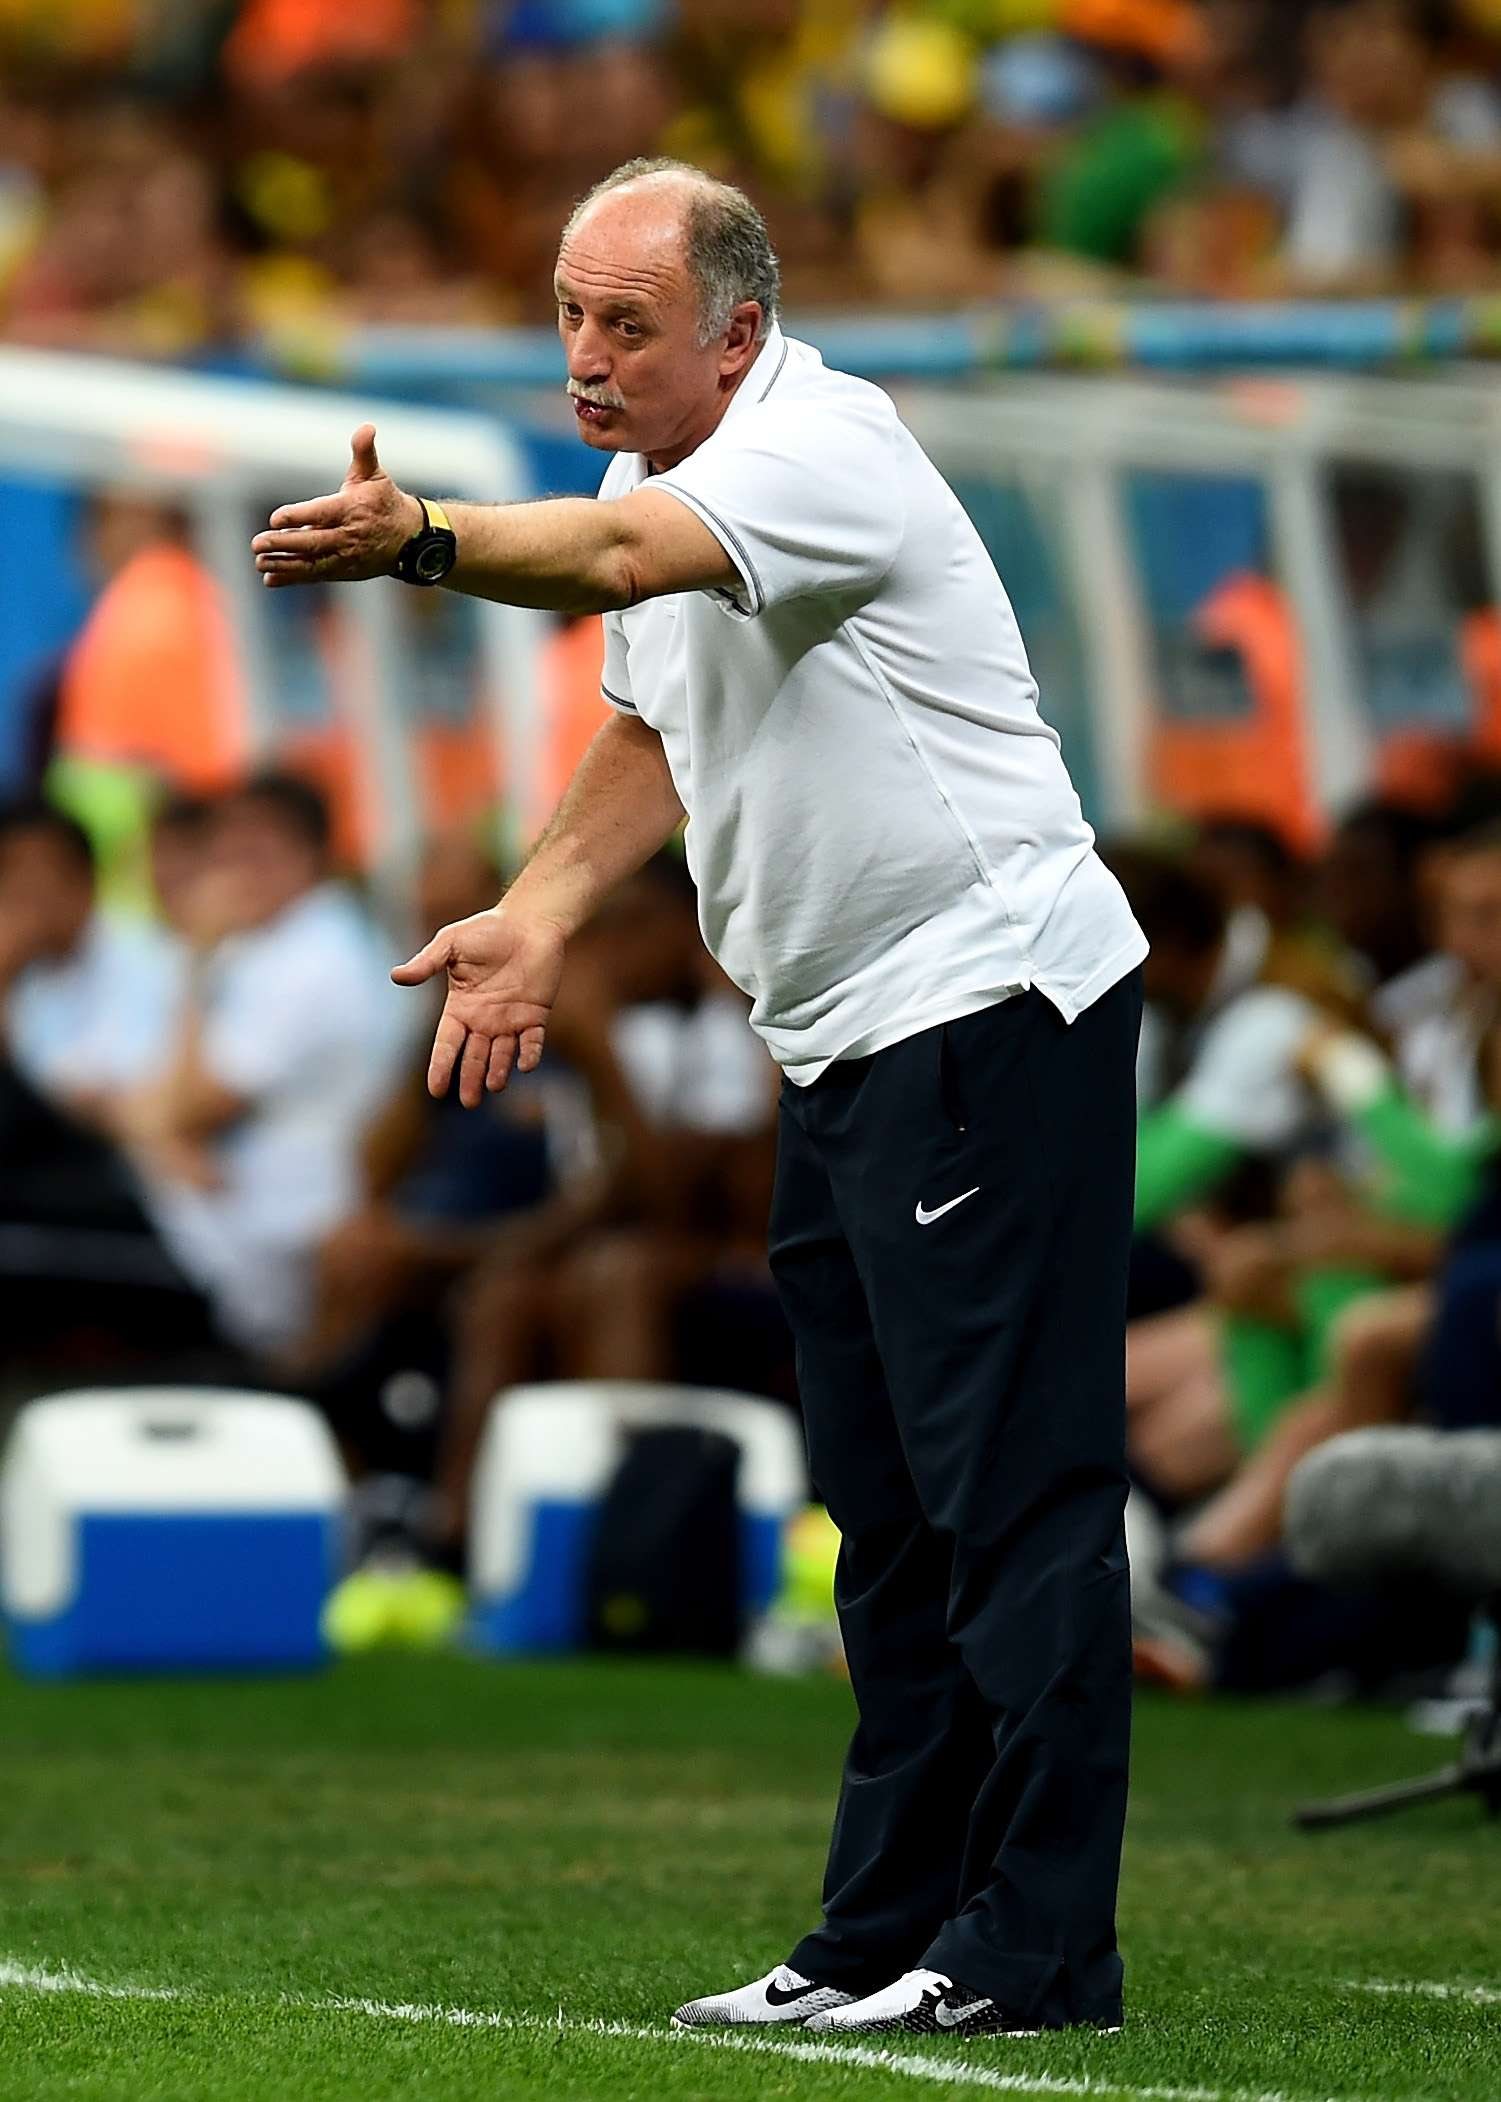 Gremio hires Scolari as new coach